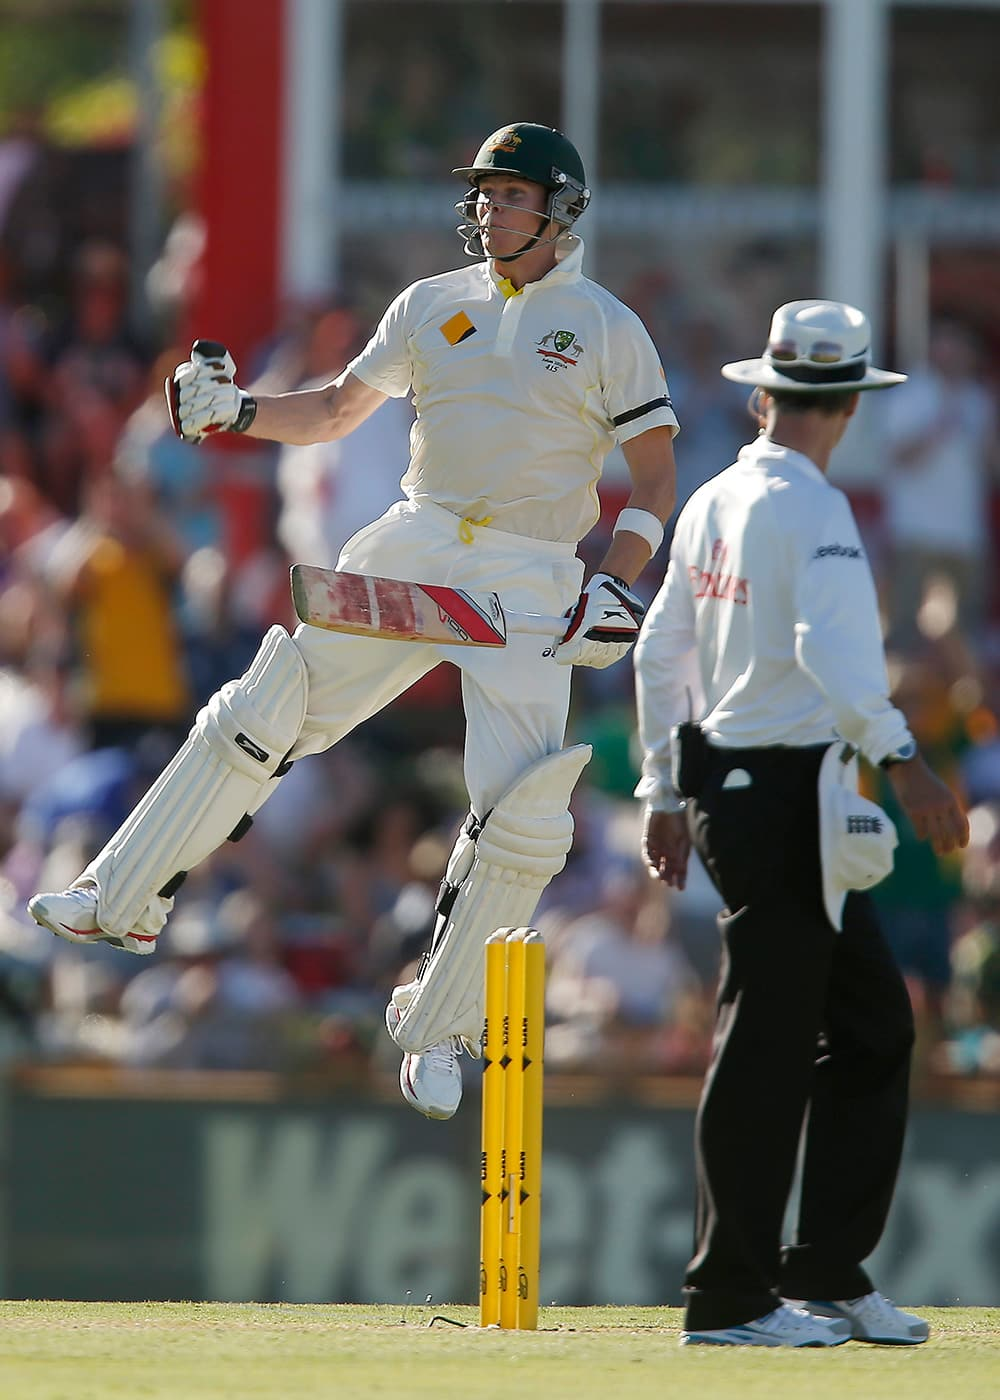 Australia's Steve Smith jumps in the air to celebrate scoring 100 runs against England on the first day of their Ashes cricket test match in Perth, Australia.